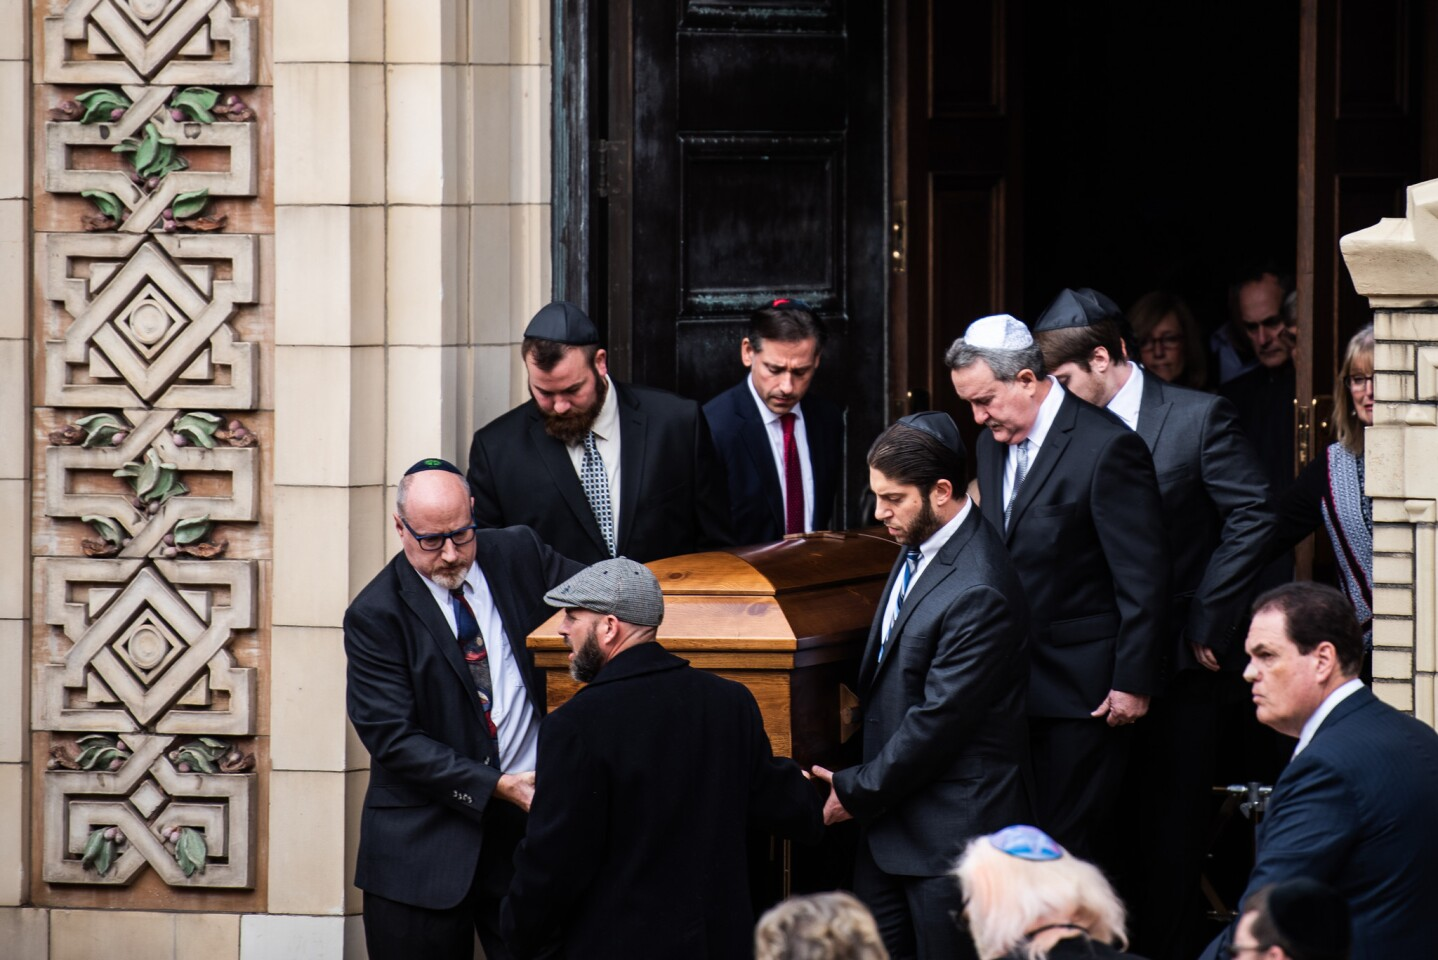 Pallbearers carry the caskets of brothers David and Cecil Rosenthal in Pittsburgh on Tuesday.